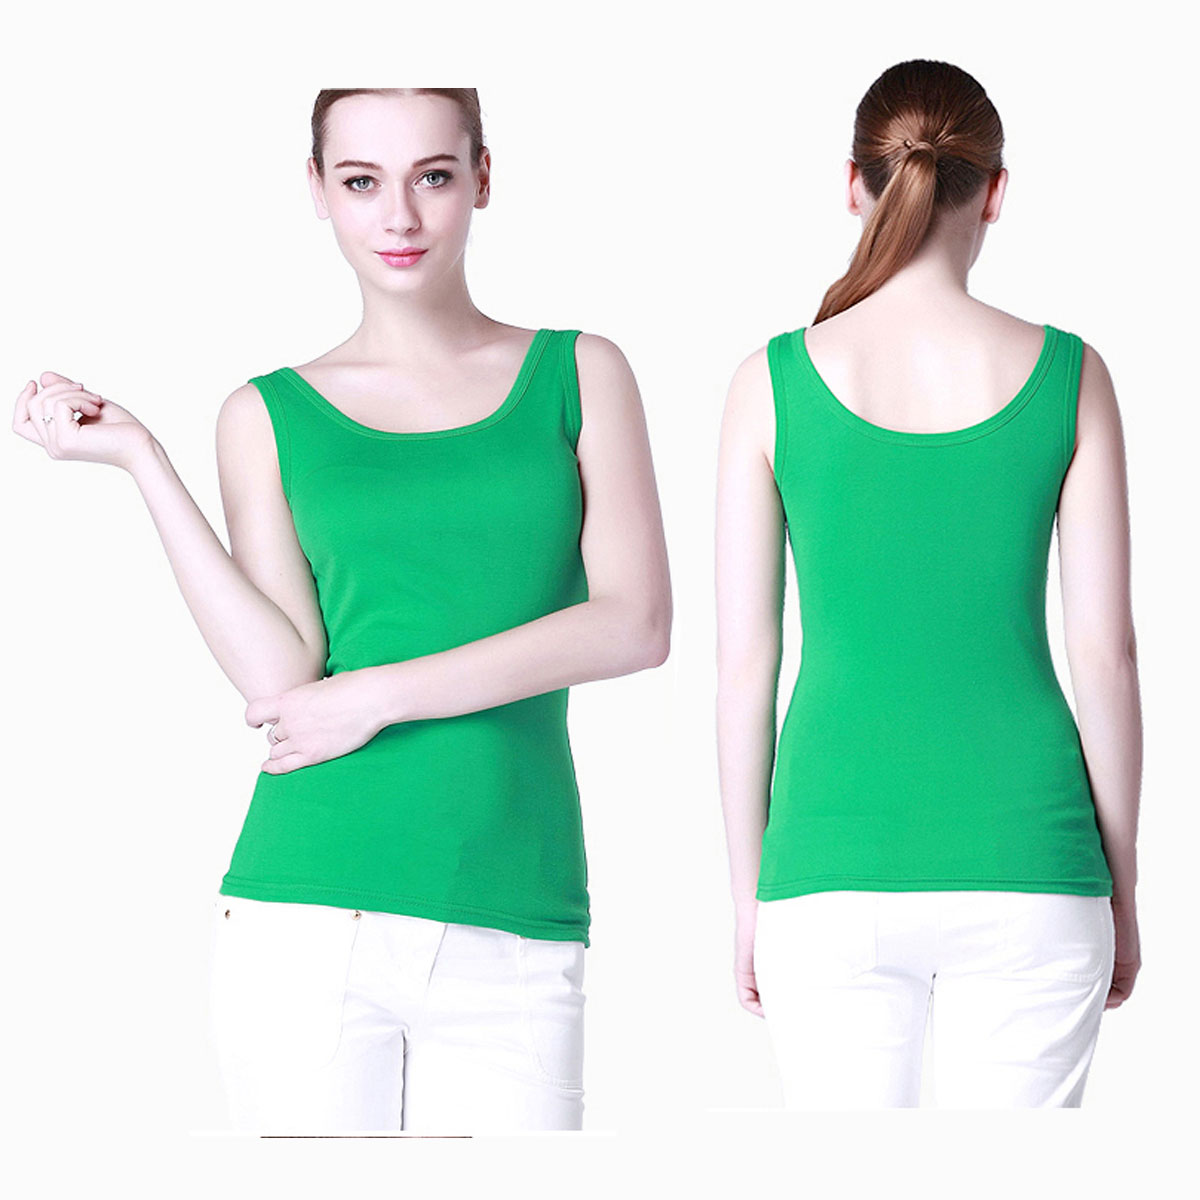 NEW Casual tight tanks Womens Sleeveless Tank Tops summer modal cotton no Sleeve T-Shirt Vest solid free size high elasticОдежда и ак�е��уары<br><br><br>Aliexpress